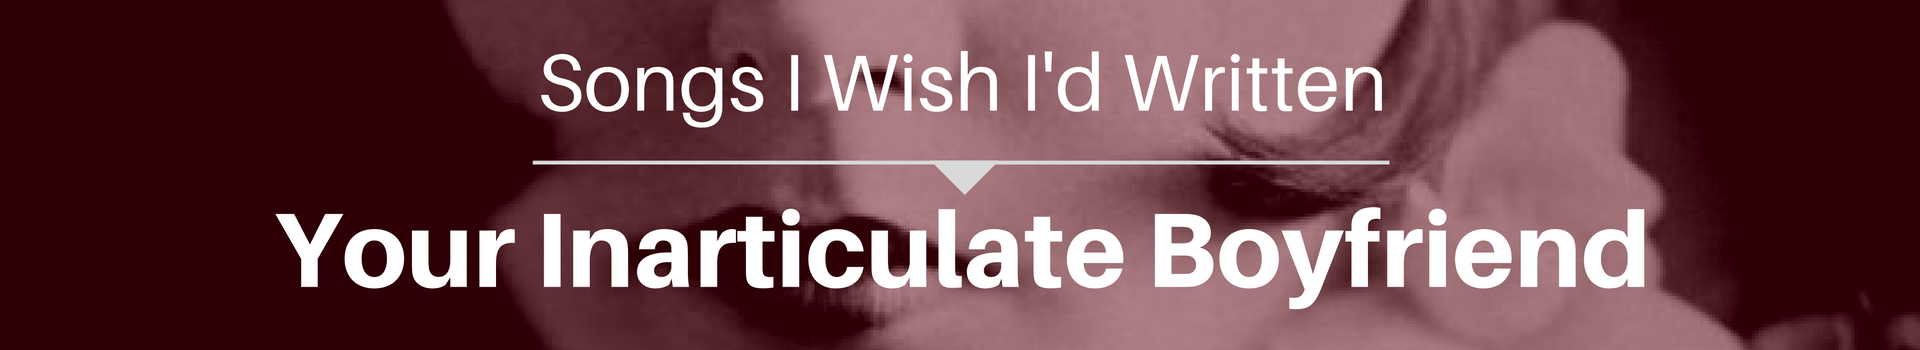 Songs I Wish I'd Written: Your Inarticulate Boyfriend